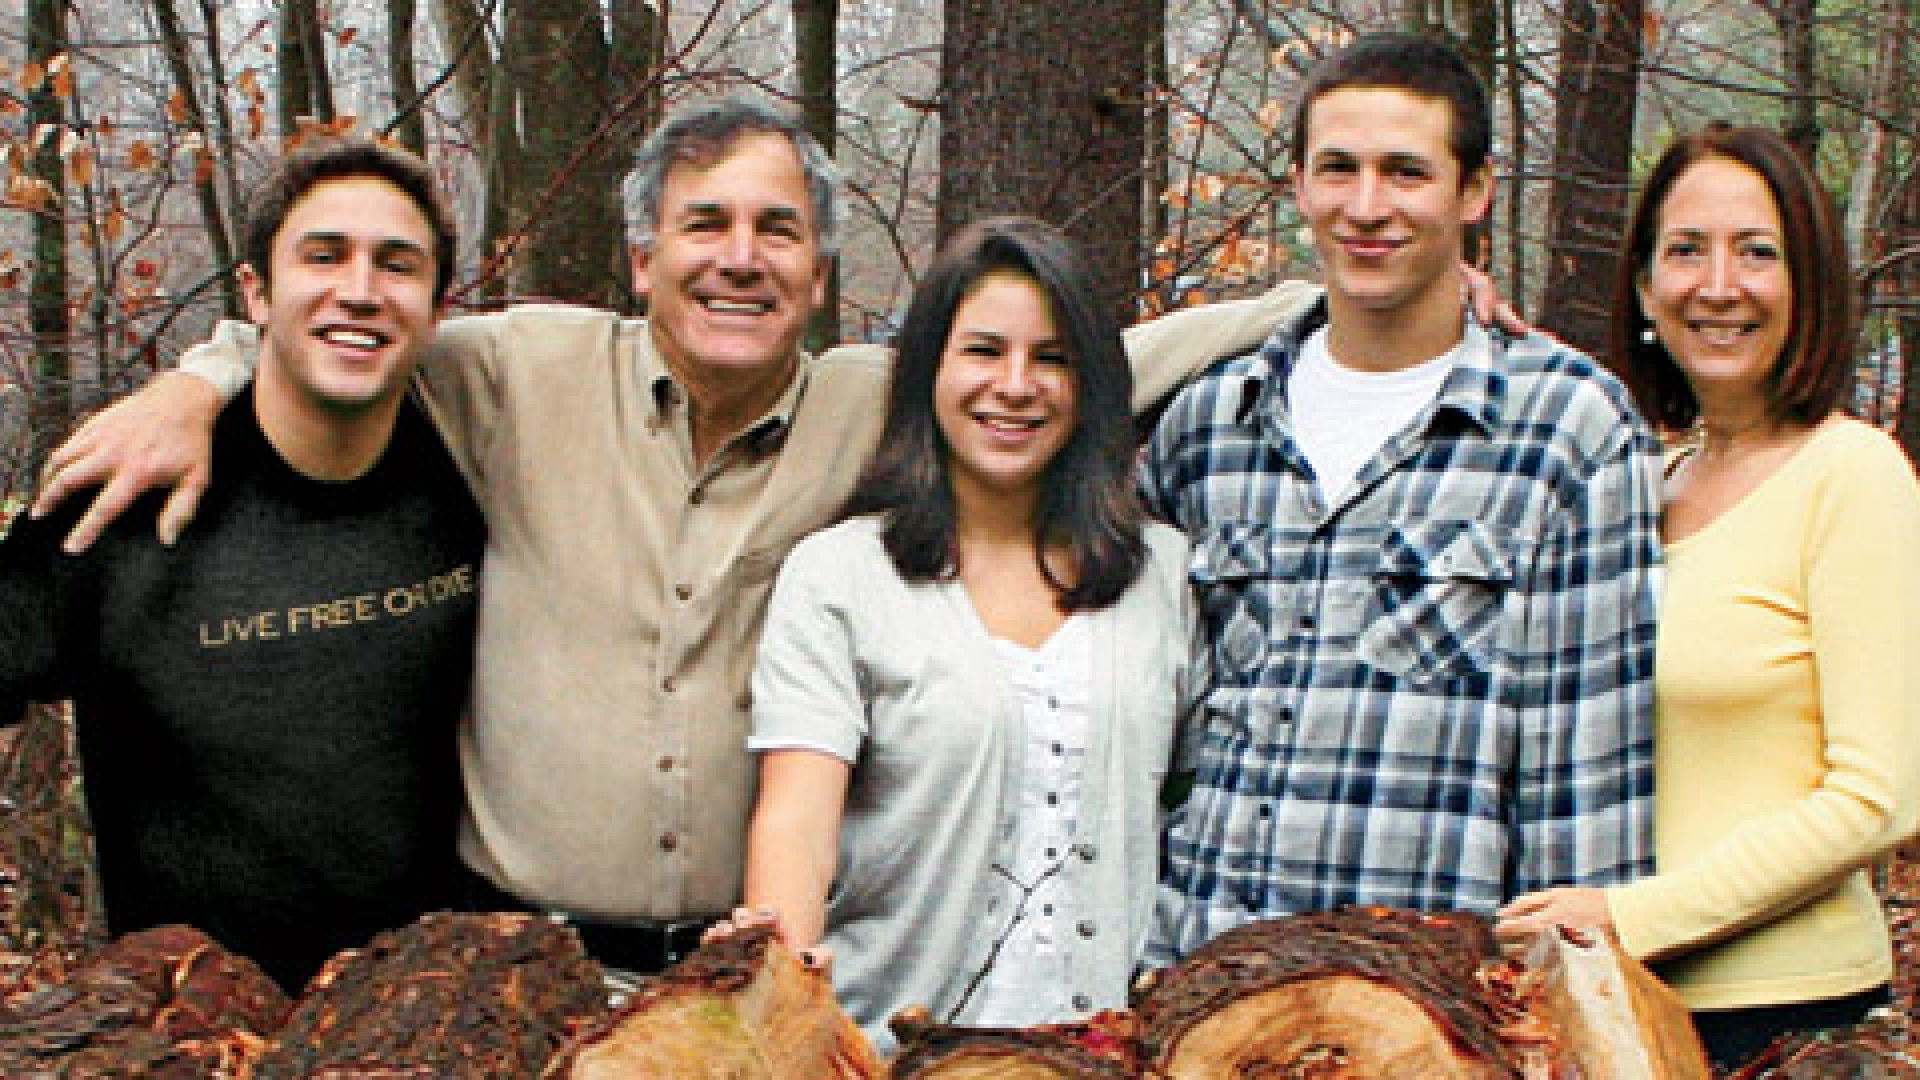 <b>All Together Now</b> The Hirshberg family at their home in New Hampshire